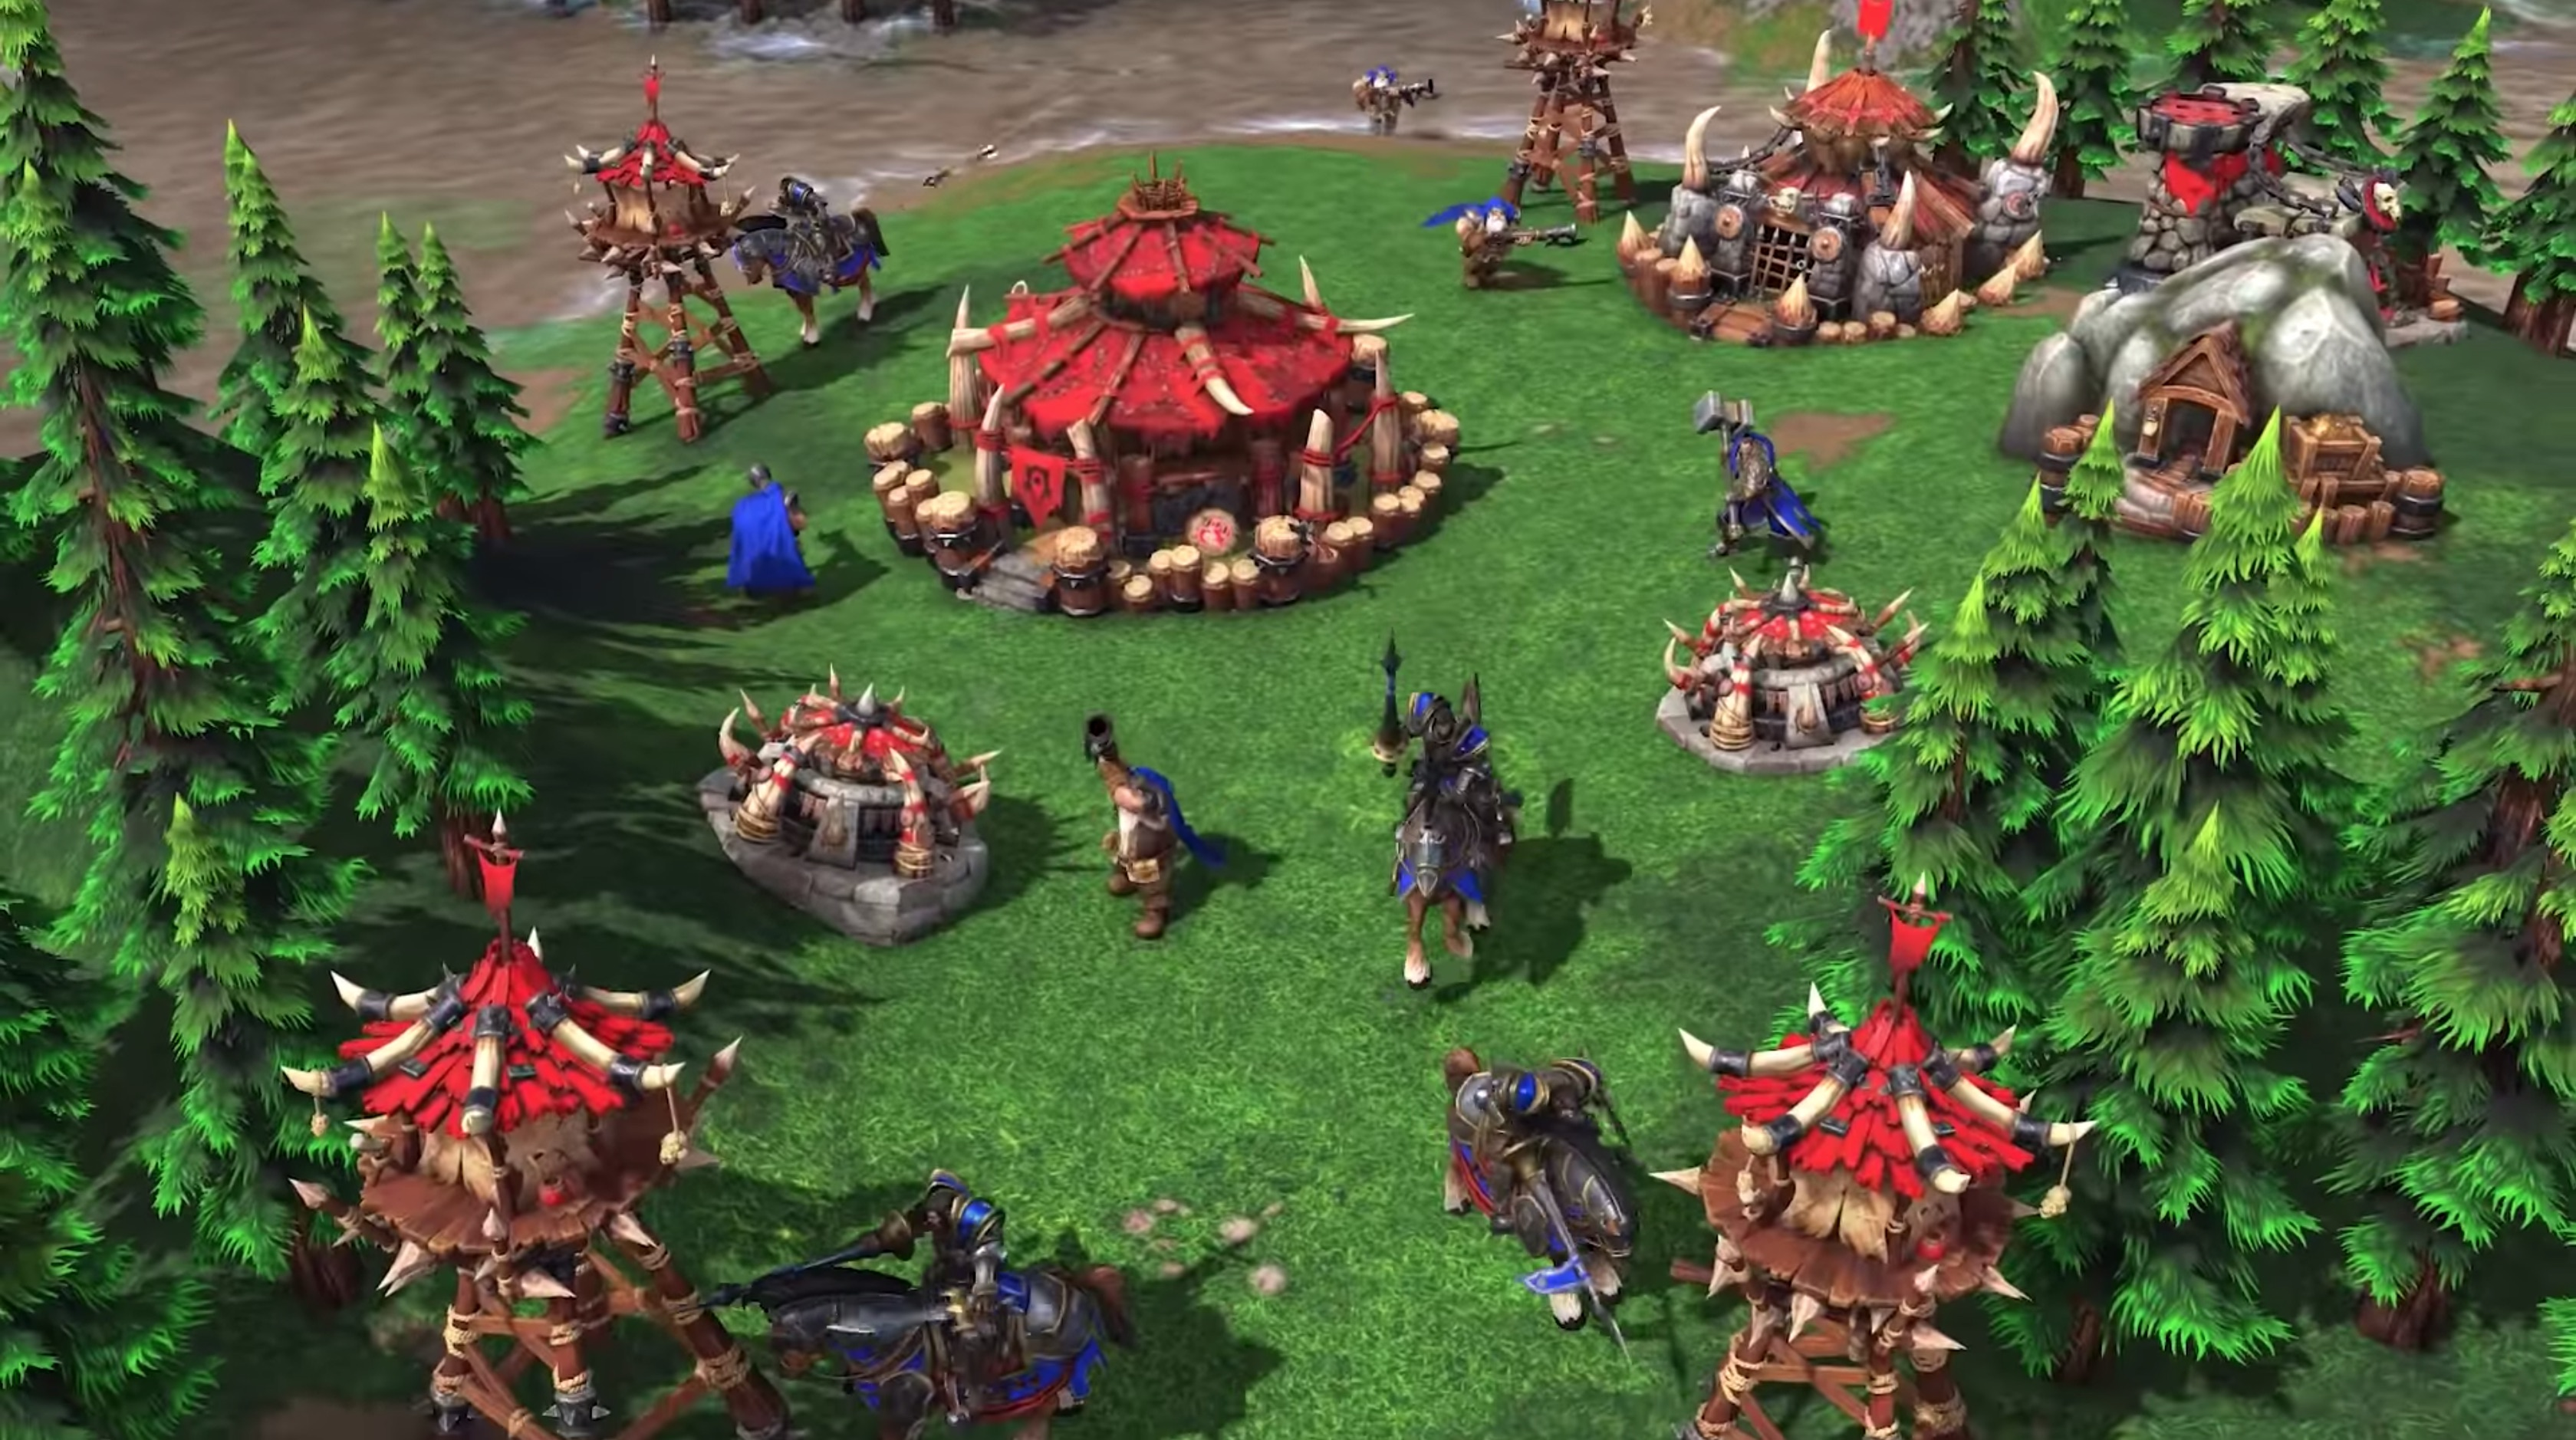 Warcraft III: Reforged Improve Battle System